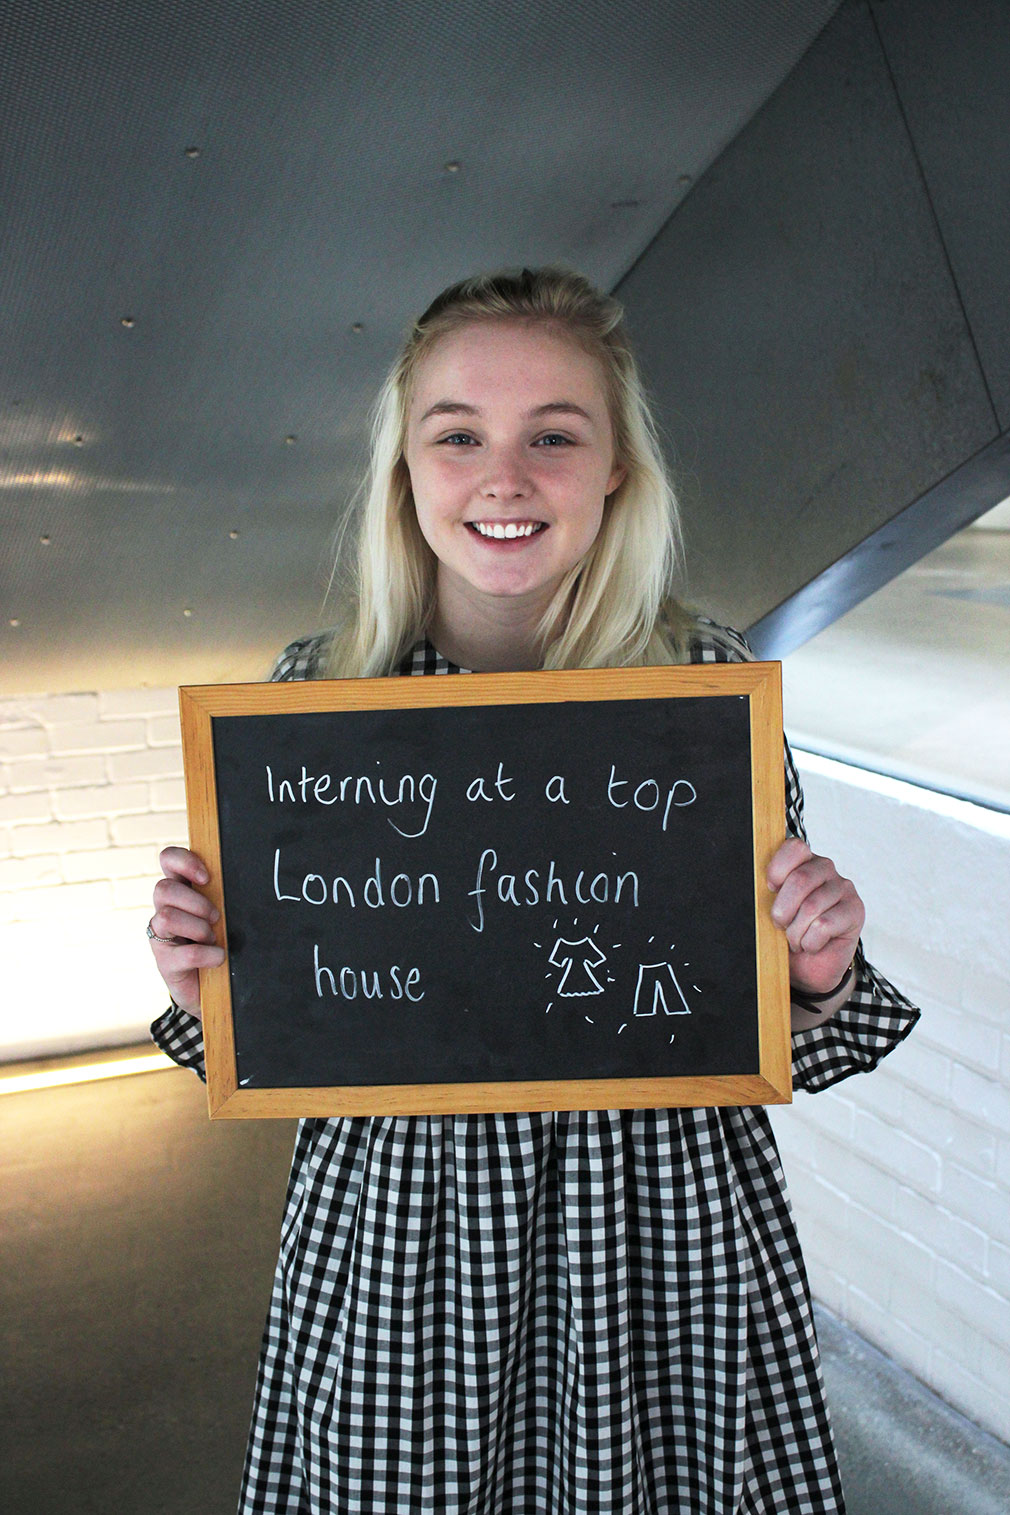 What are you doing over the summer before third year? - Beth, BA (Hons) Fashion Communication and Promotion